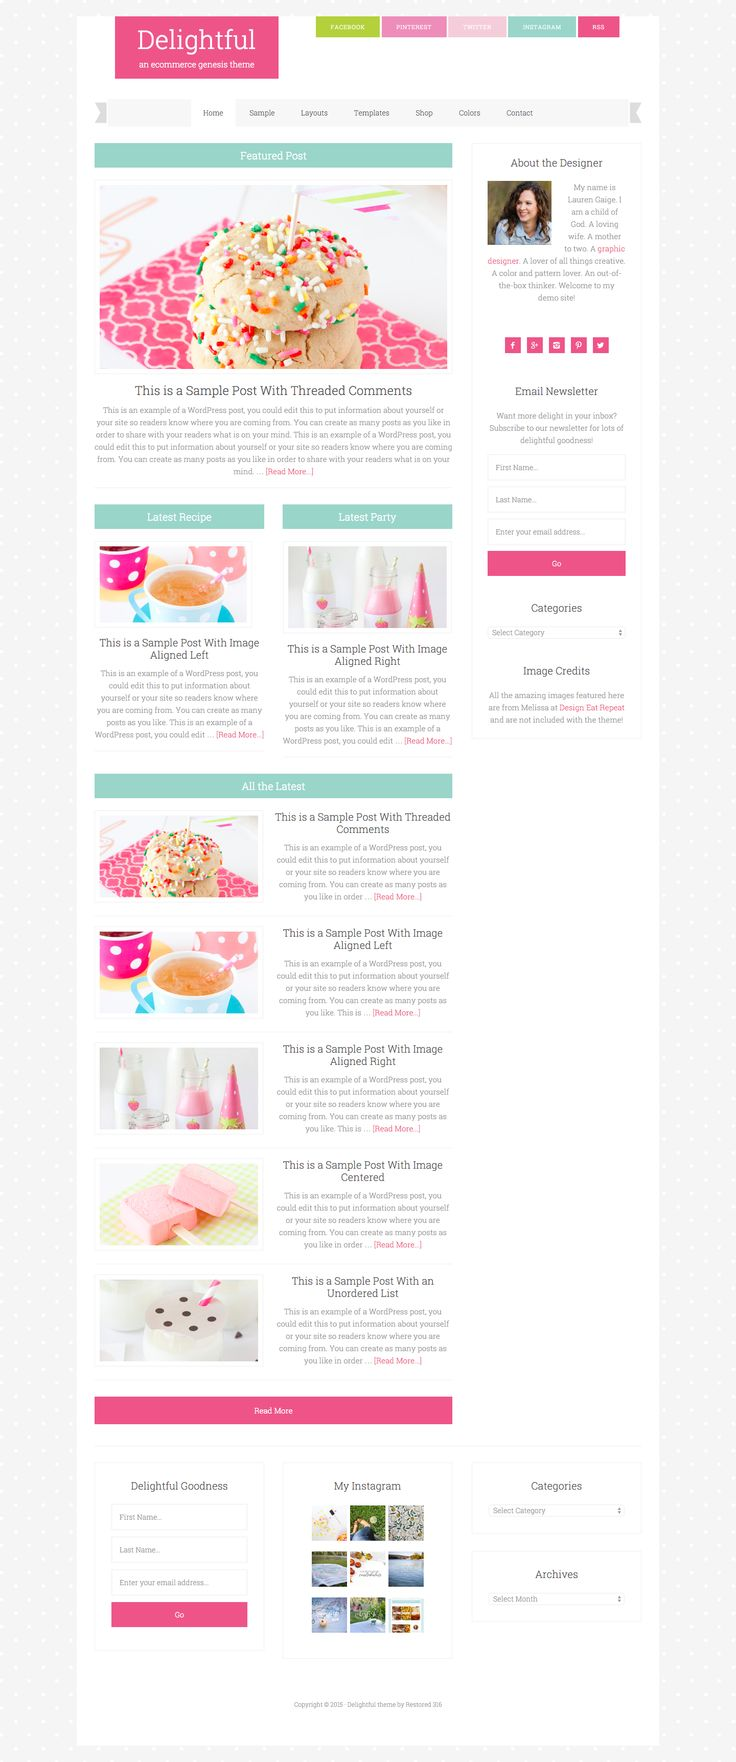 Delightful by Pink & Press